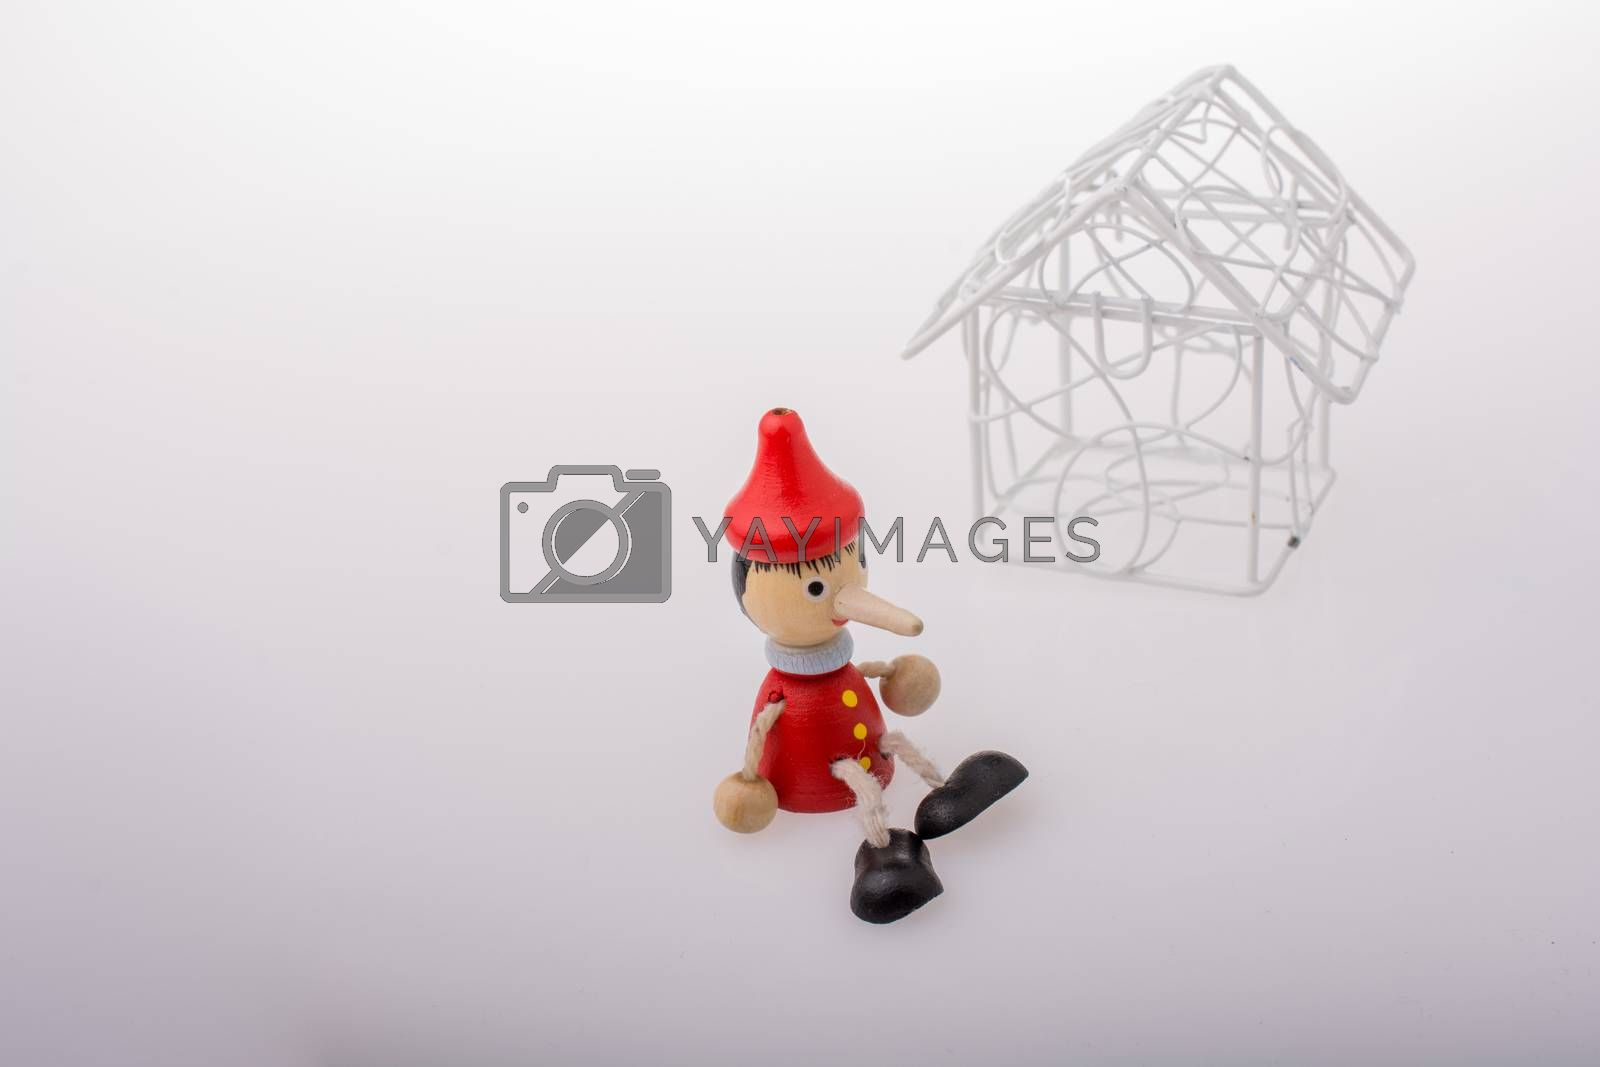 Pinocchio is sitting beside a model house